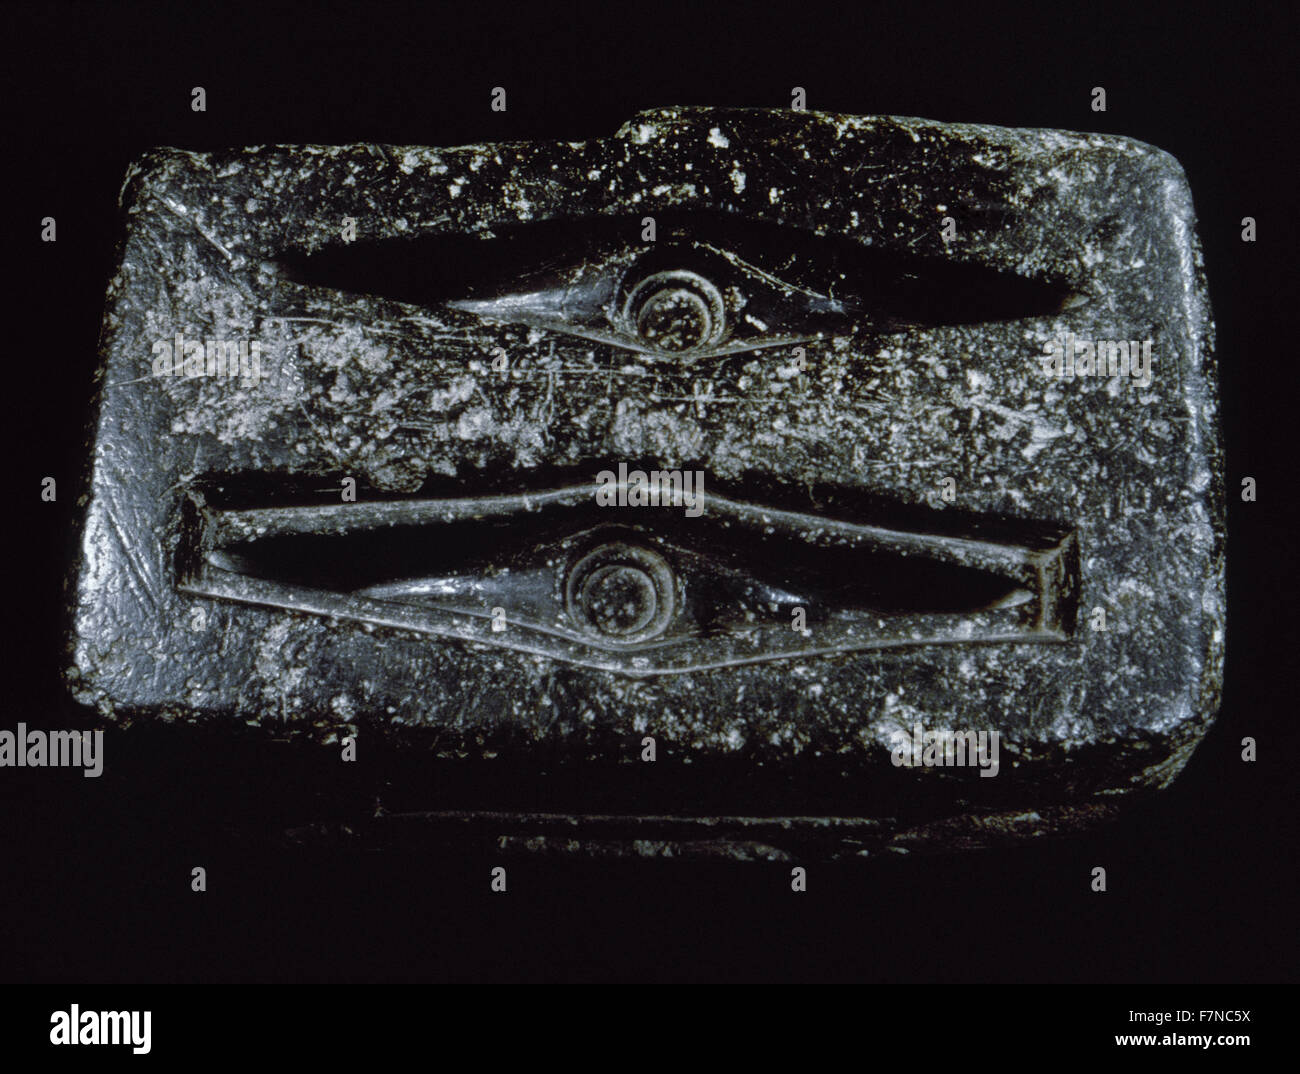 Italy. Sardinia. Nuragic civilization. Matrix used in the fusion of an ax and a knife. 10th century BC. From Belvi. - Stock Image